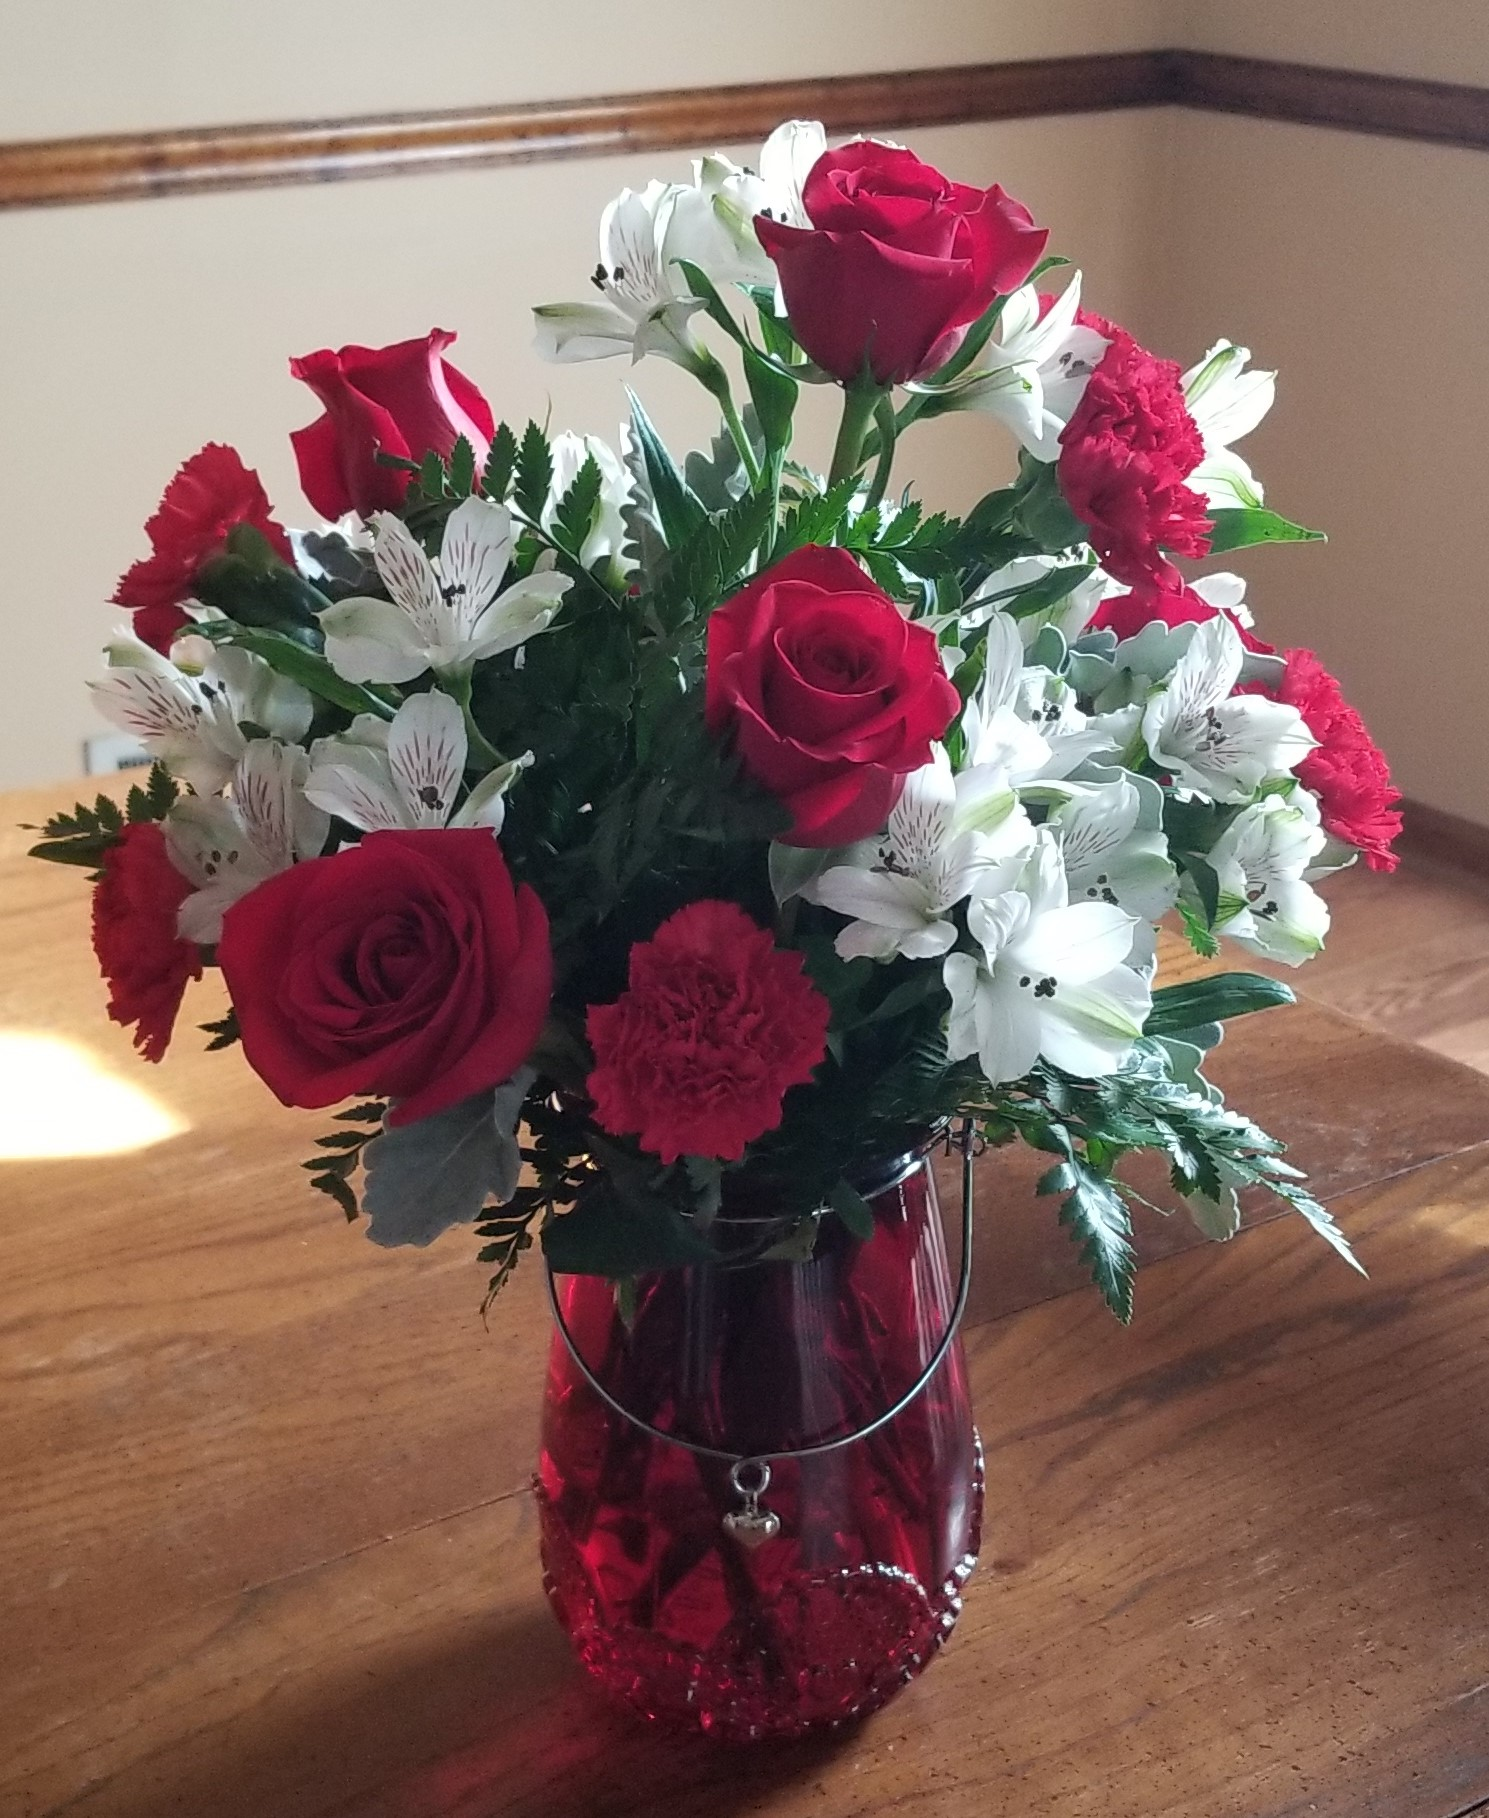 What Are The Best Flowers To Give On Valentine S Day Rural Mom